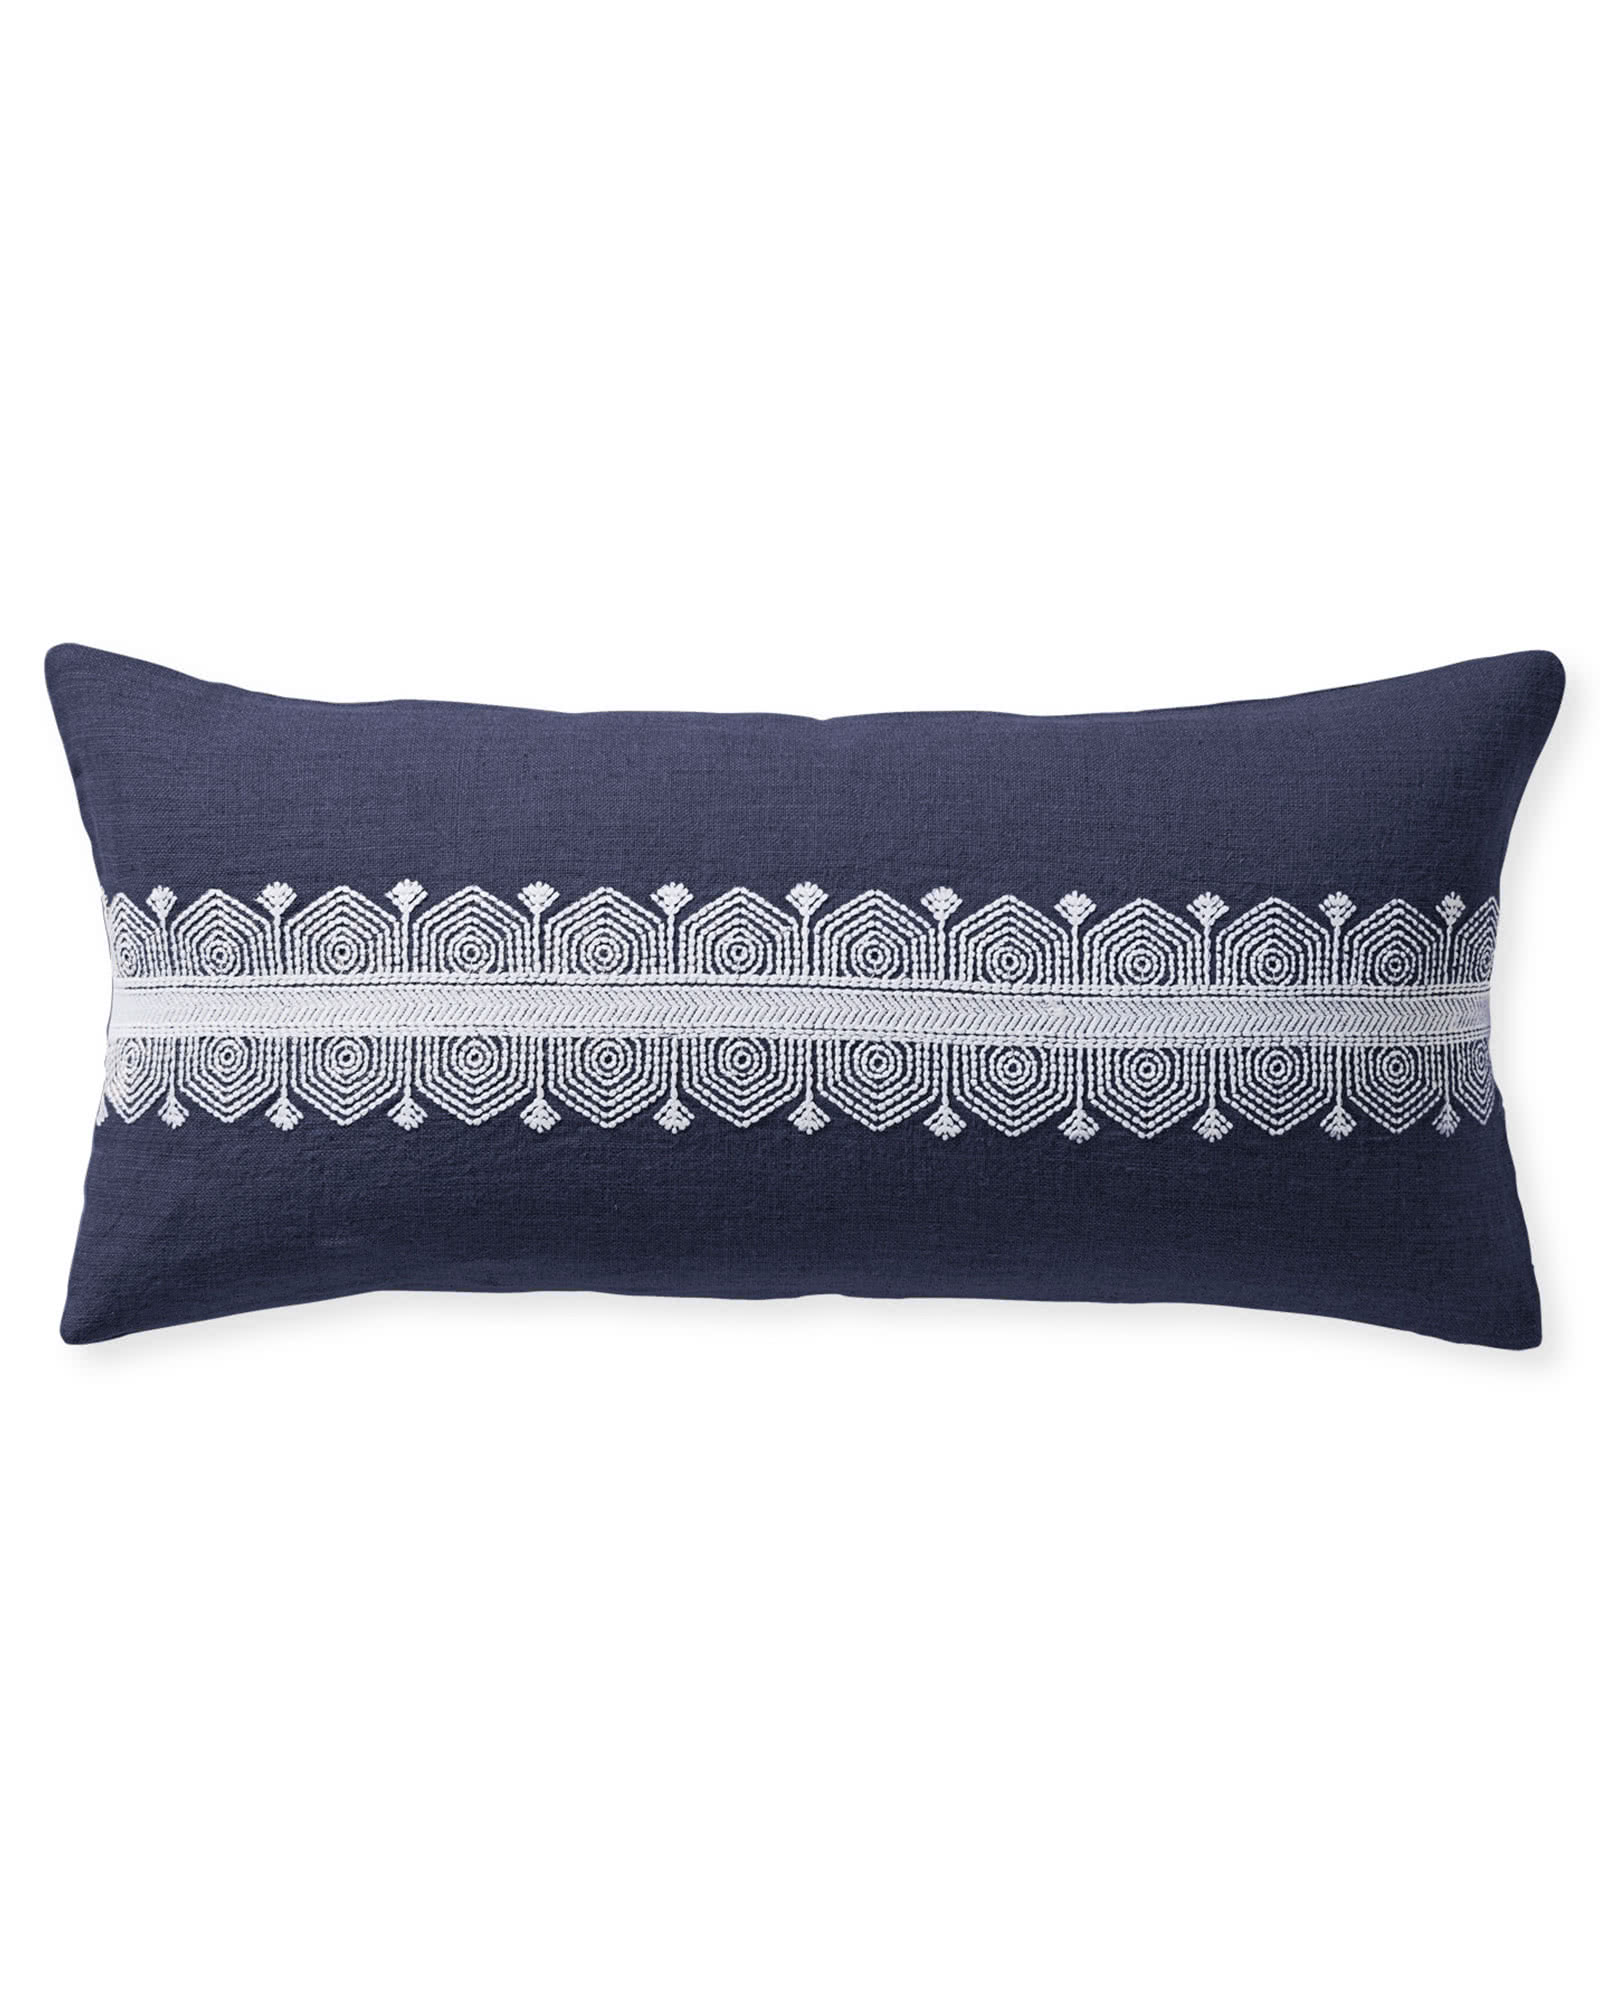 Olympia Pillow Cover, Navy